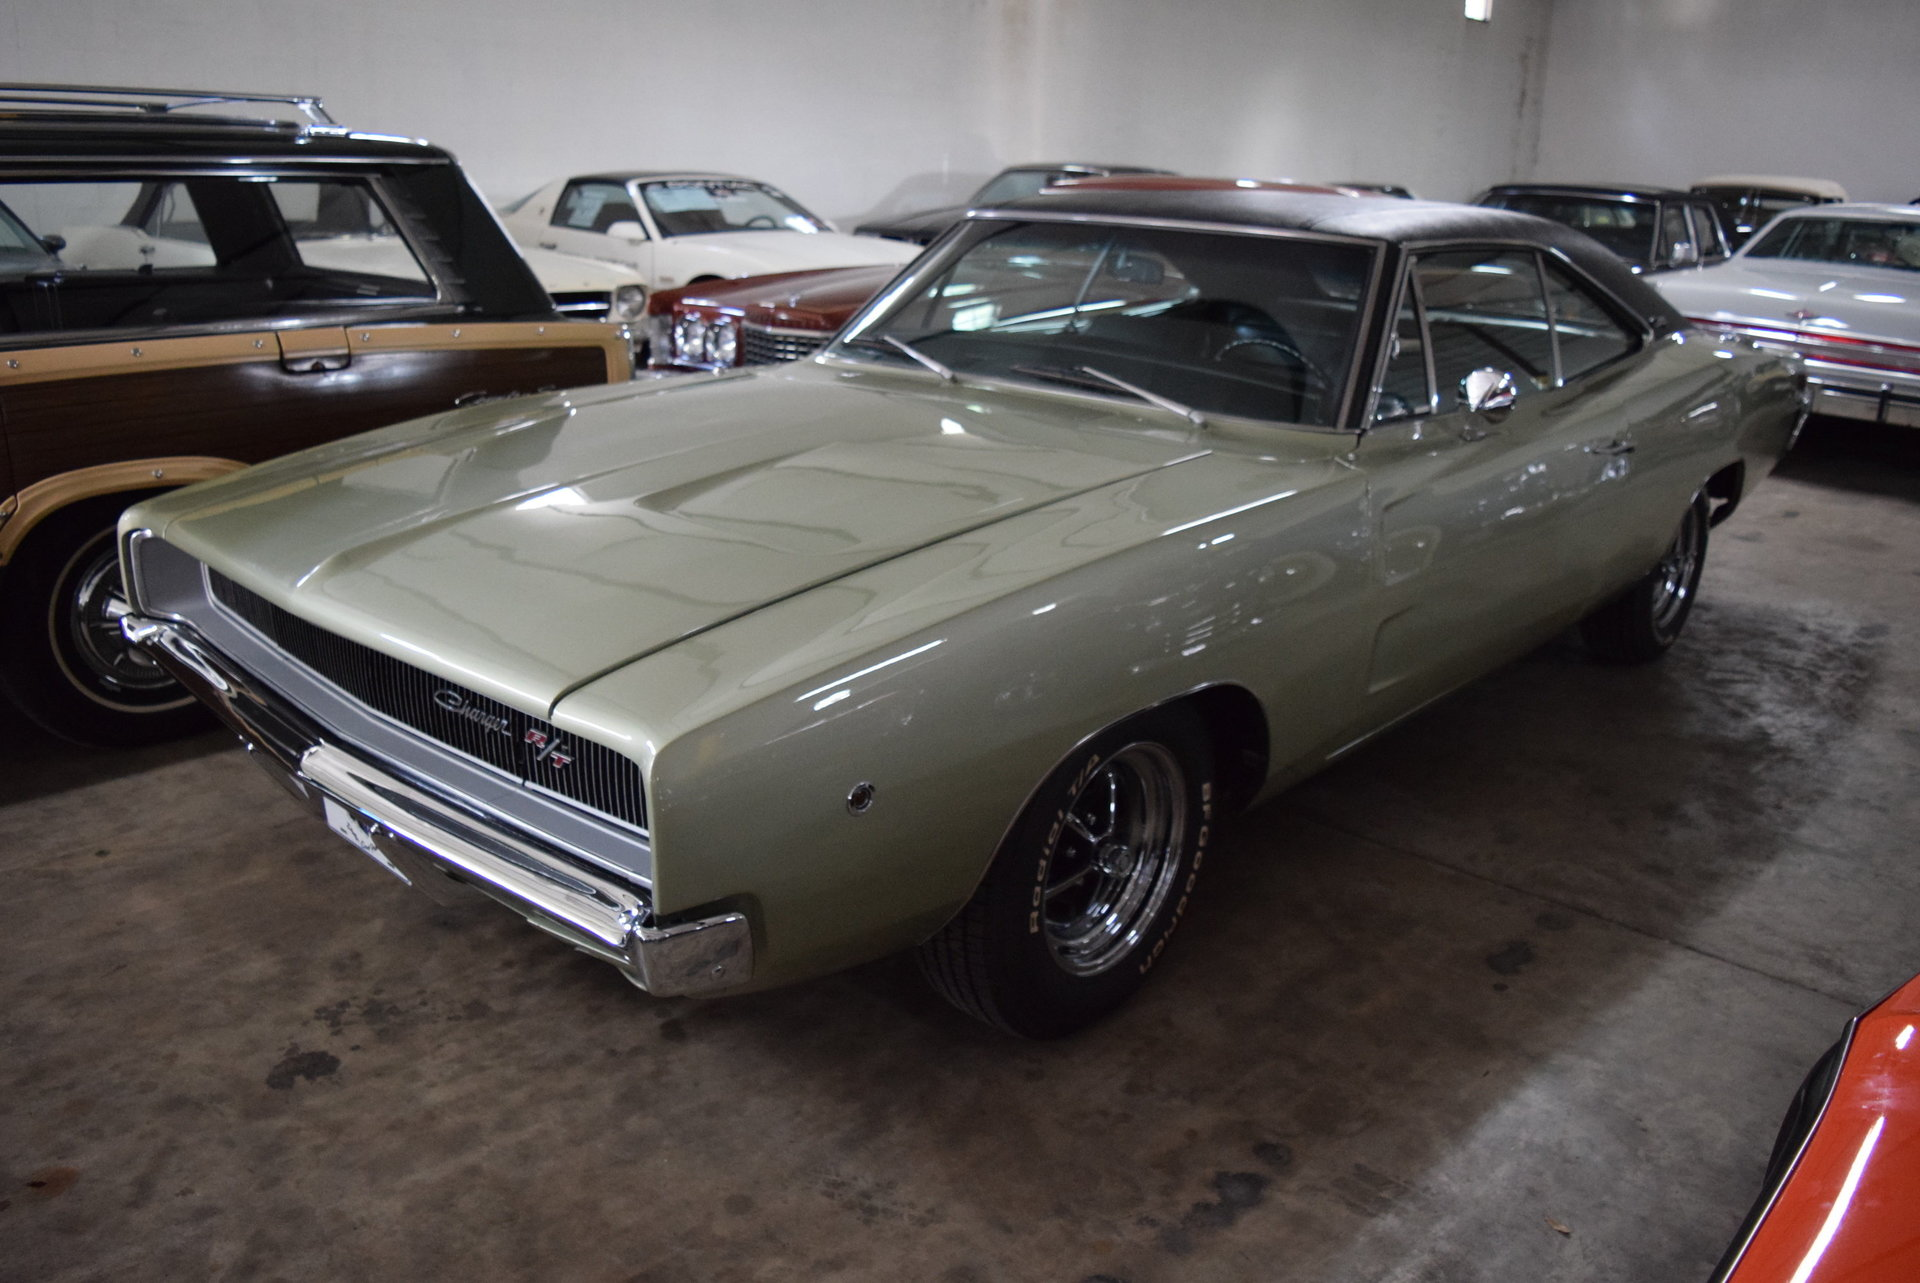 D D Hd Dodge Charger R T on 1968 Dodge Charger Center Console